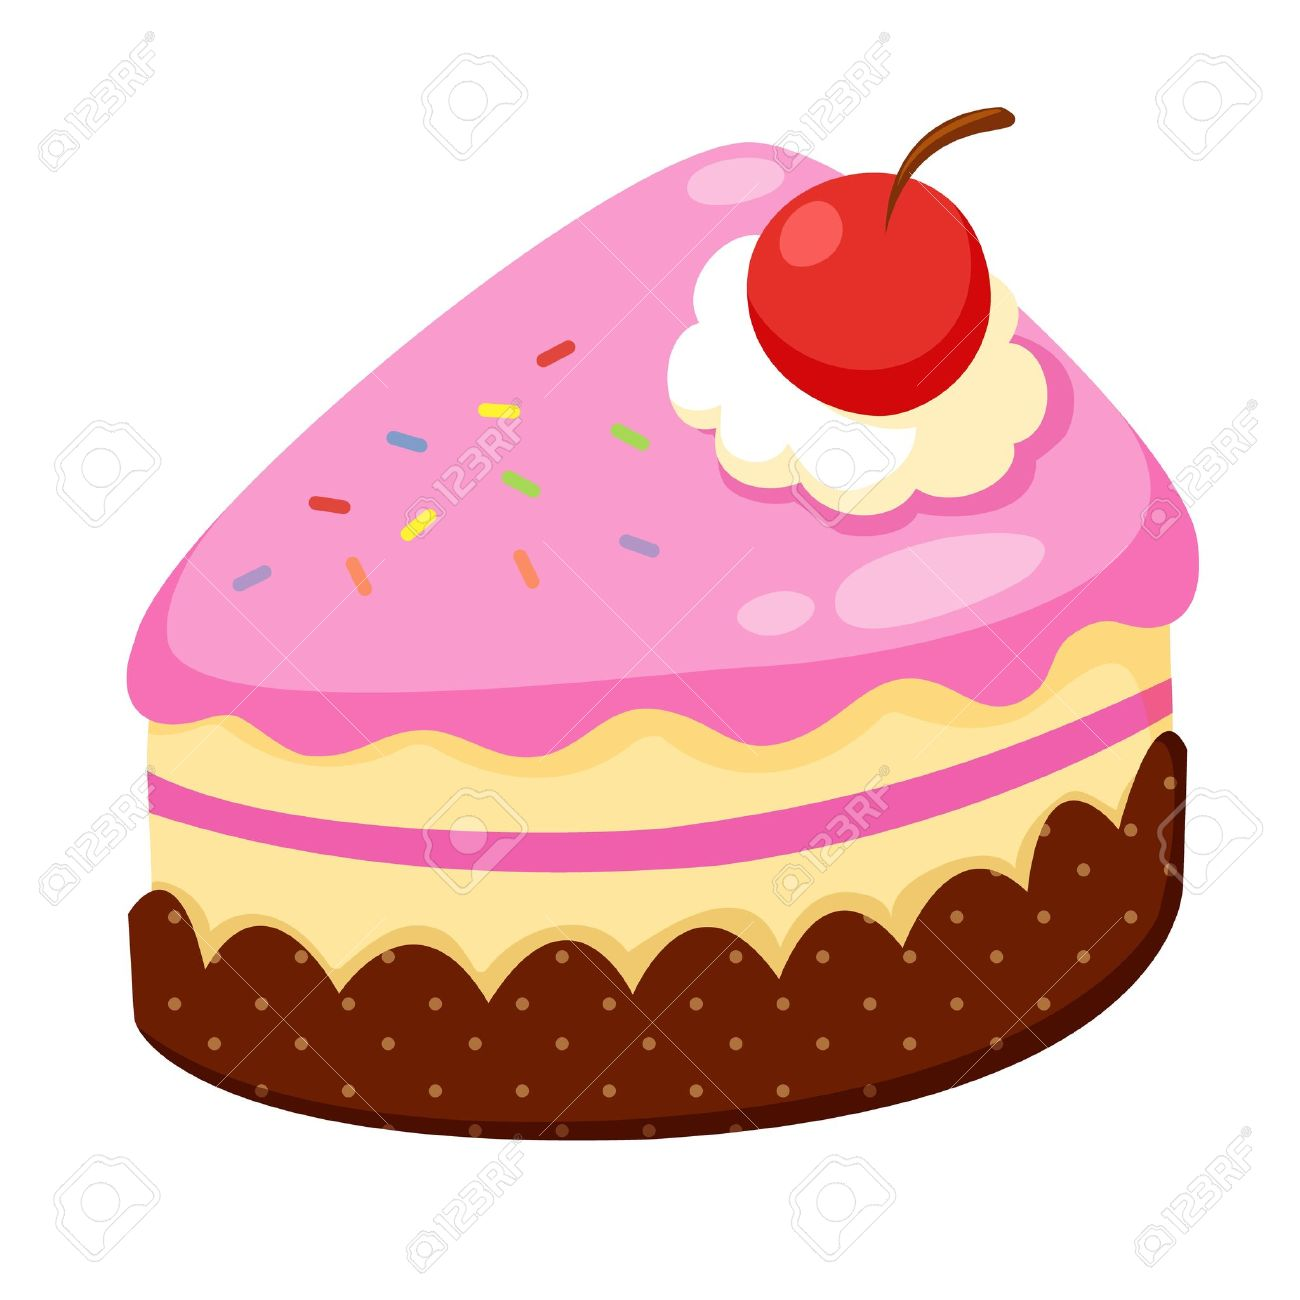 strawberry cake royalty free cliparts vectors and stock rh 123rf com cartoon cake images with name edit cake cartoon images hd